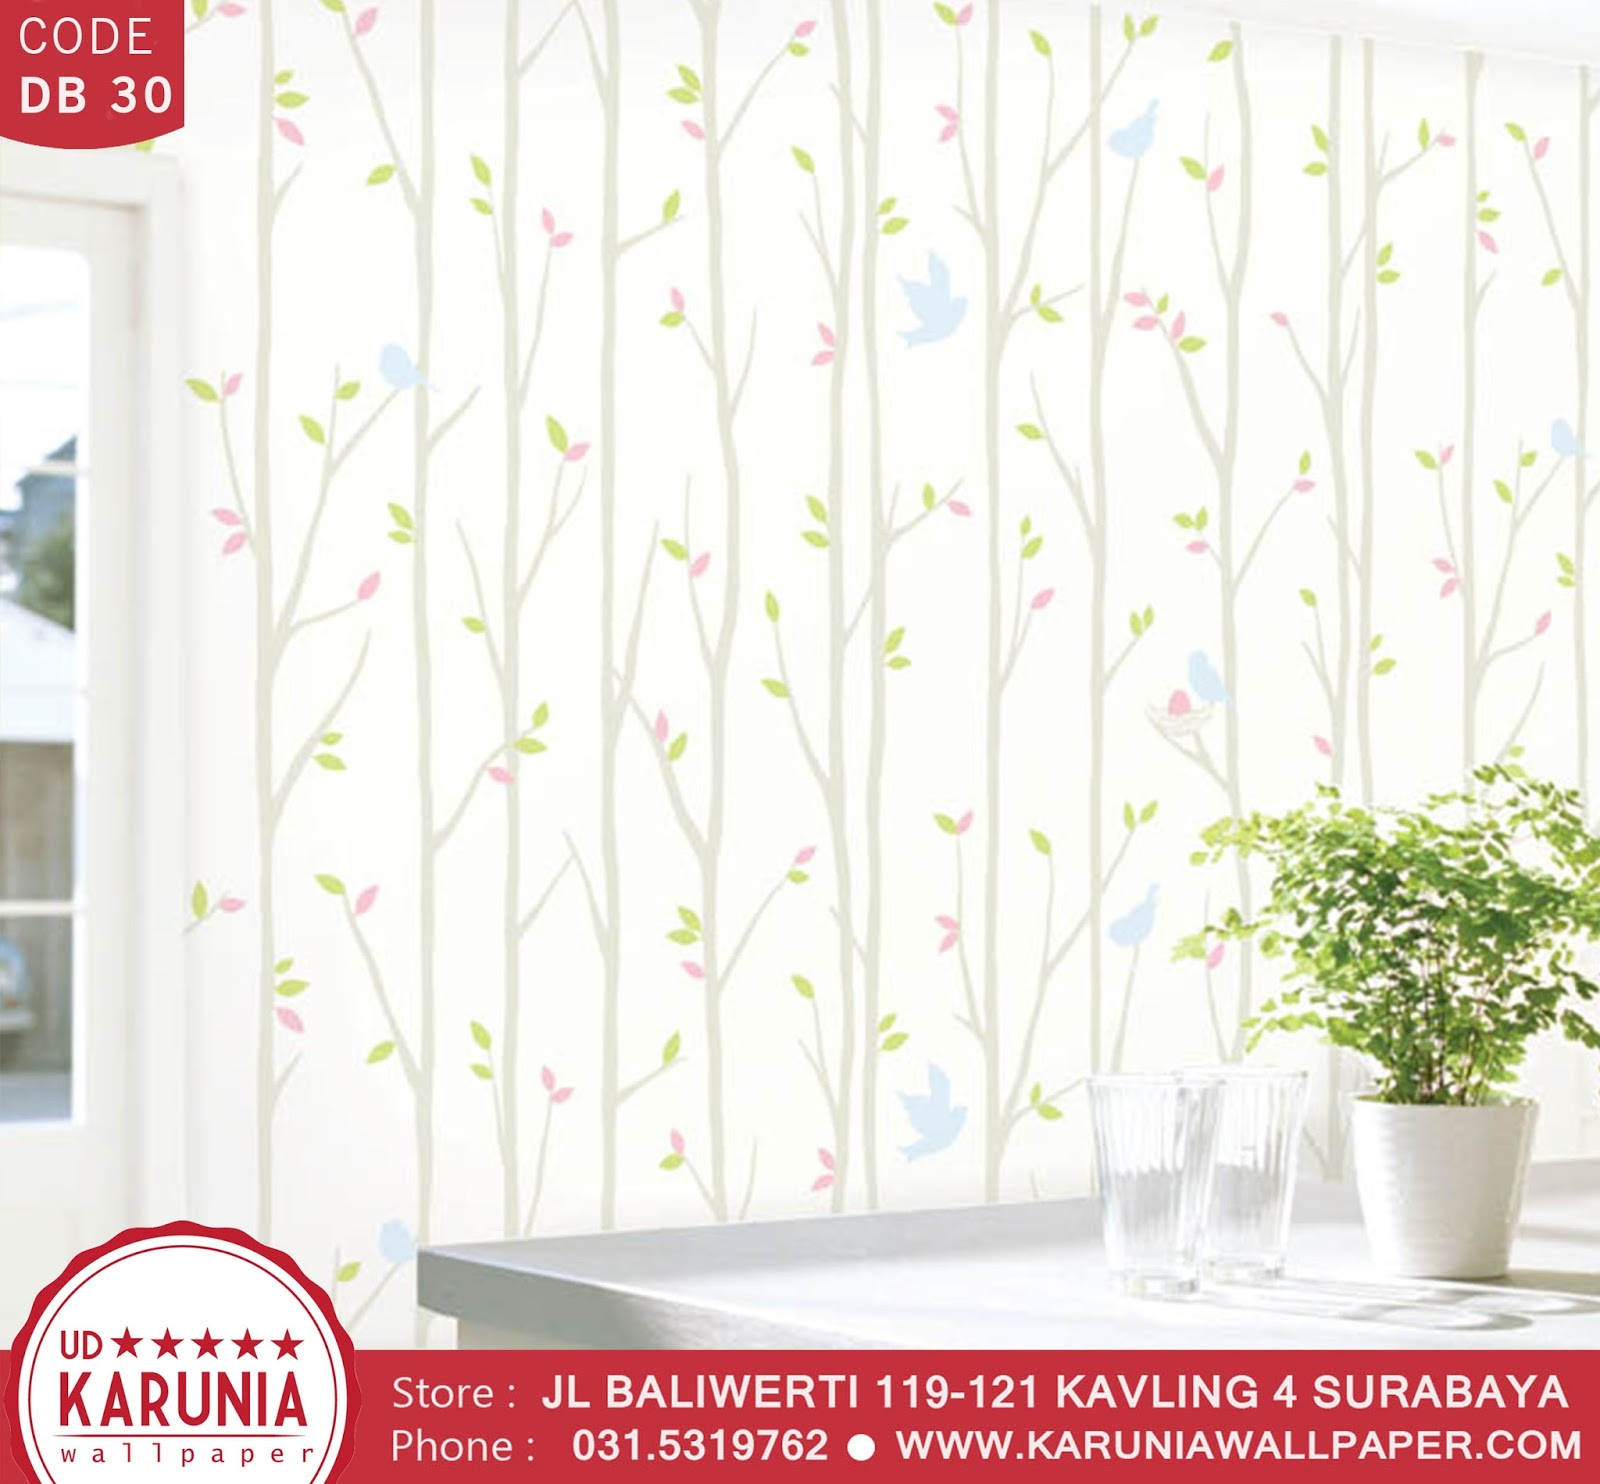 jual wallpaper anak karuniawallpaper